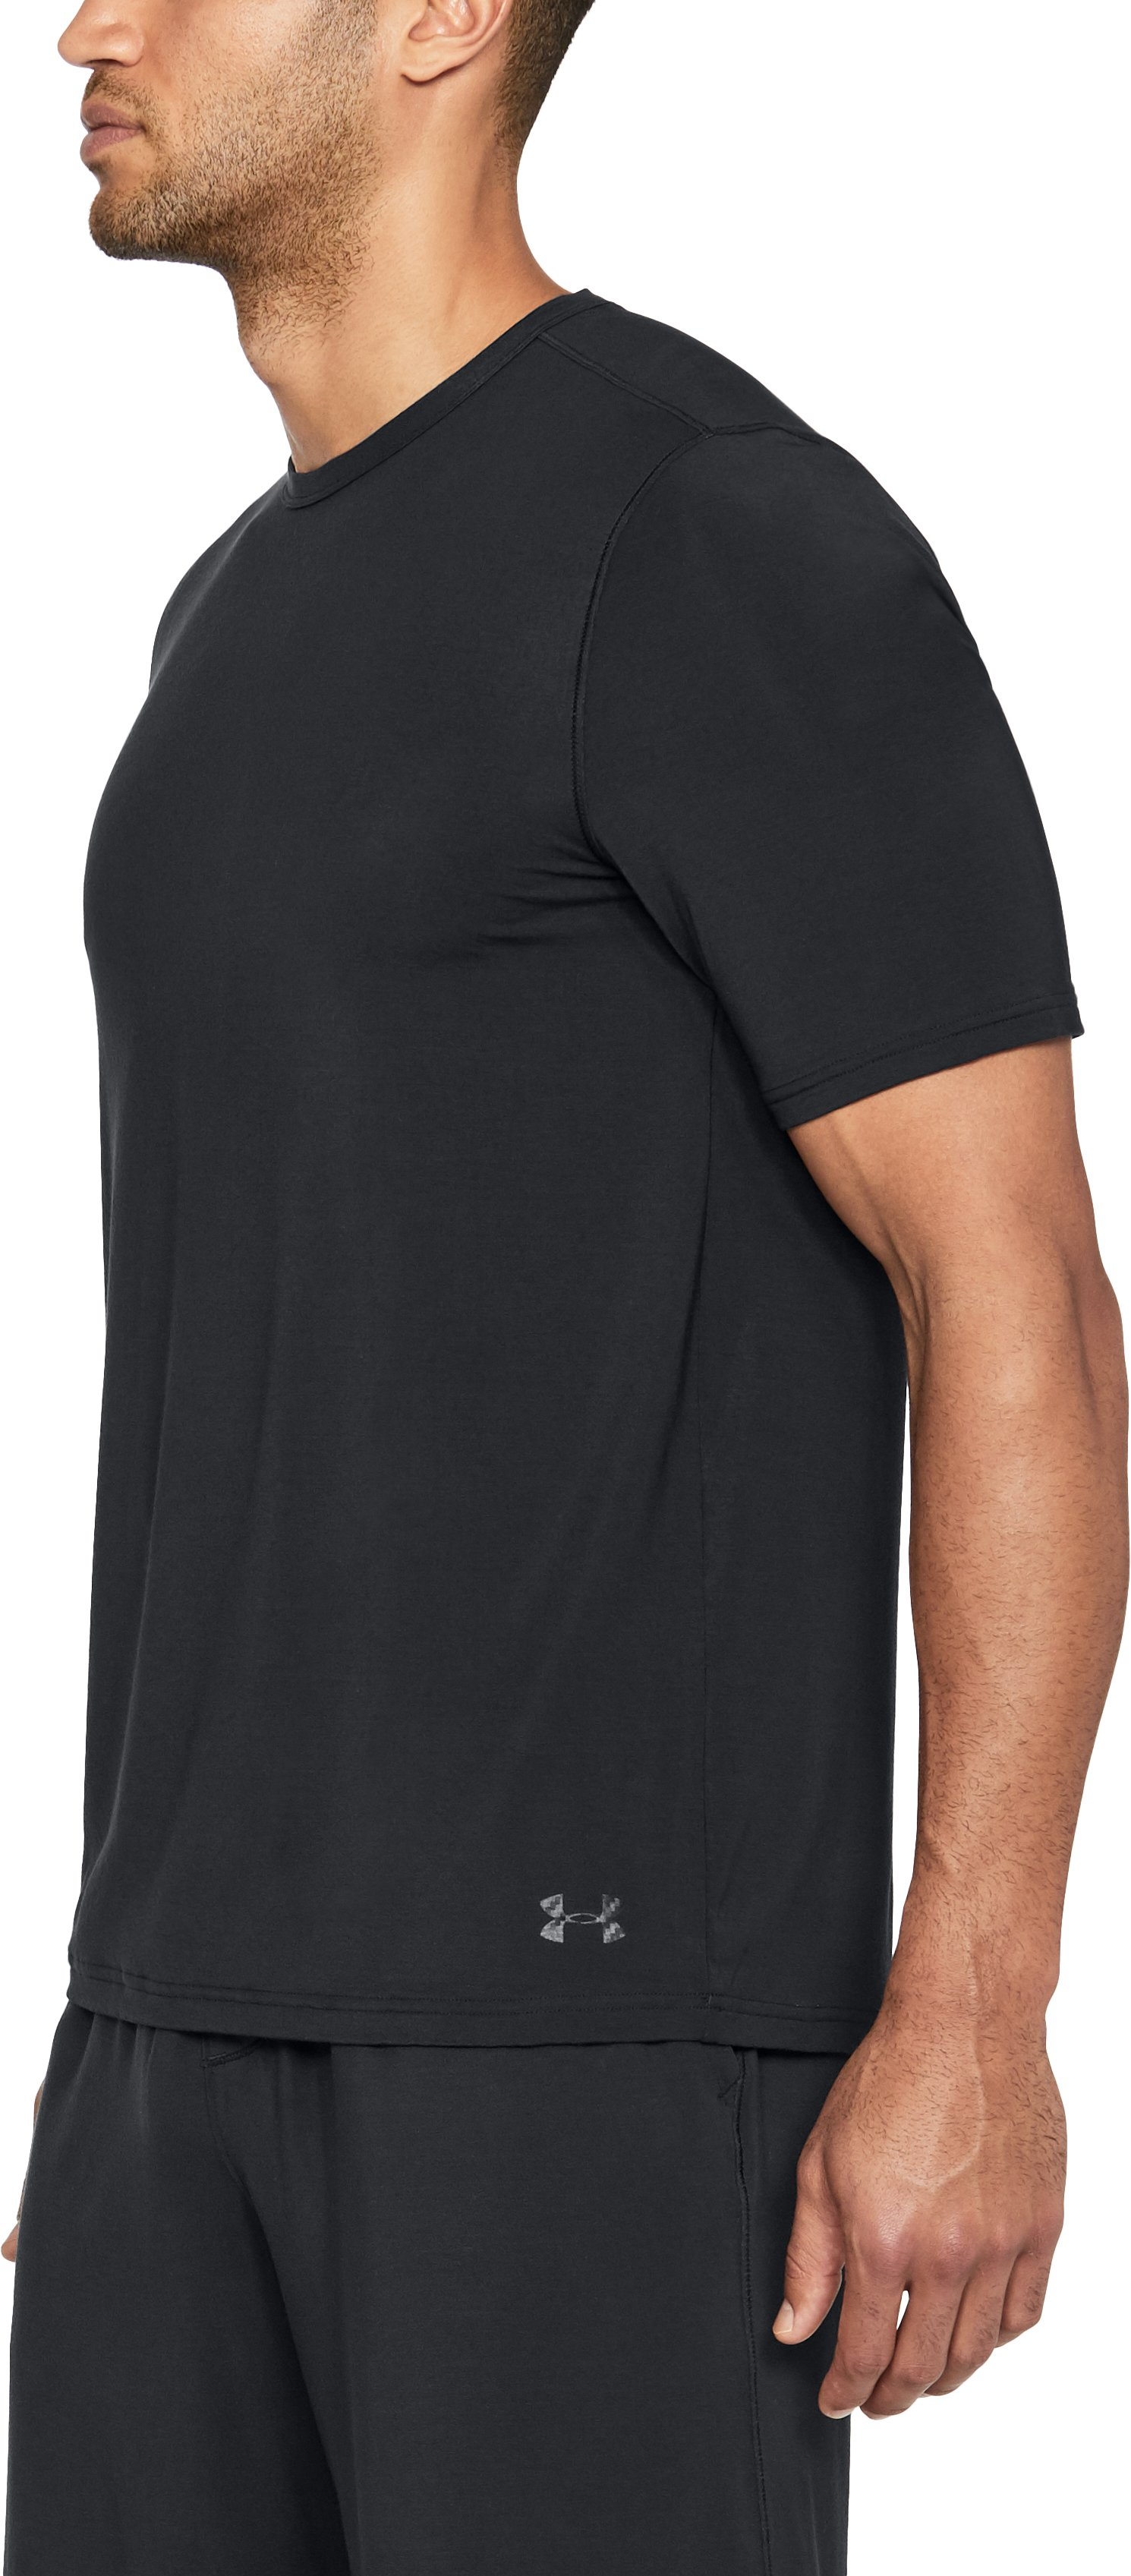 Men's Athlete Recovery Ultra Comfort Sleepwear Short Sleeve, Black ,